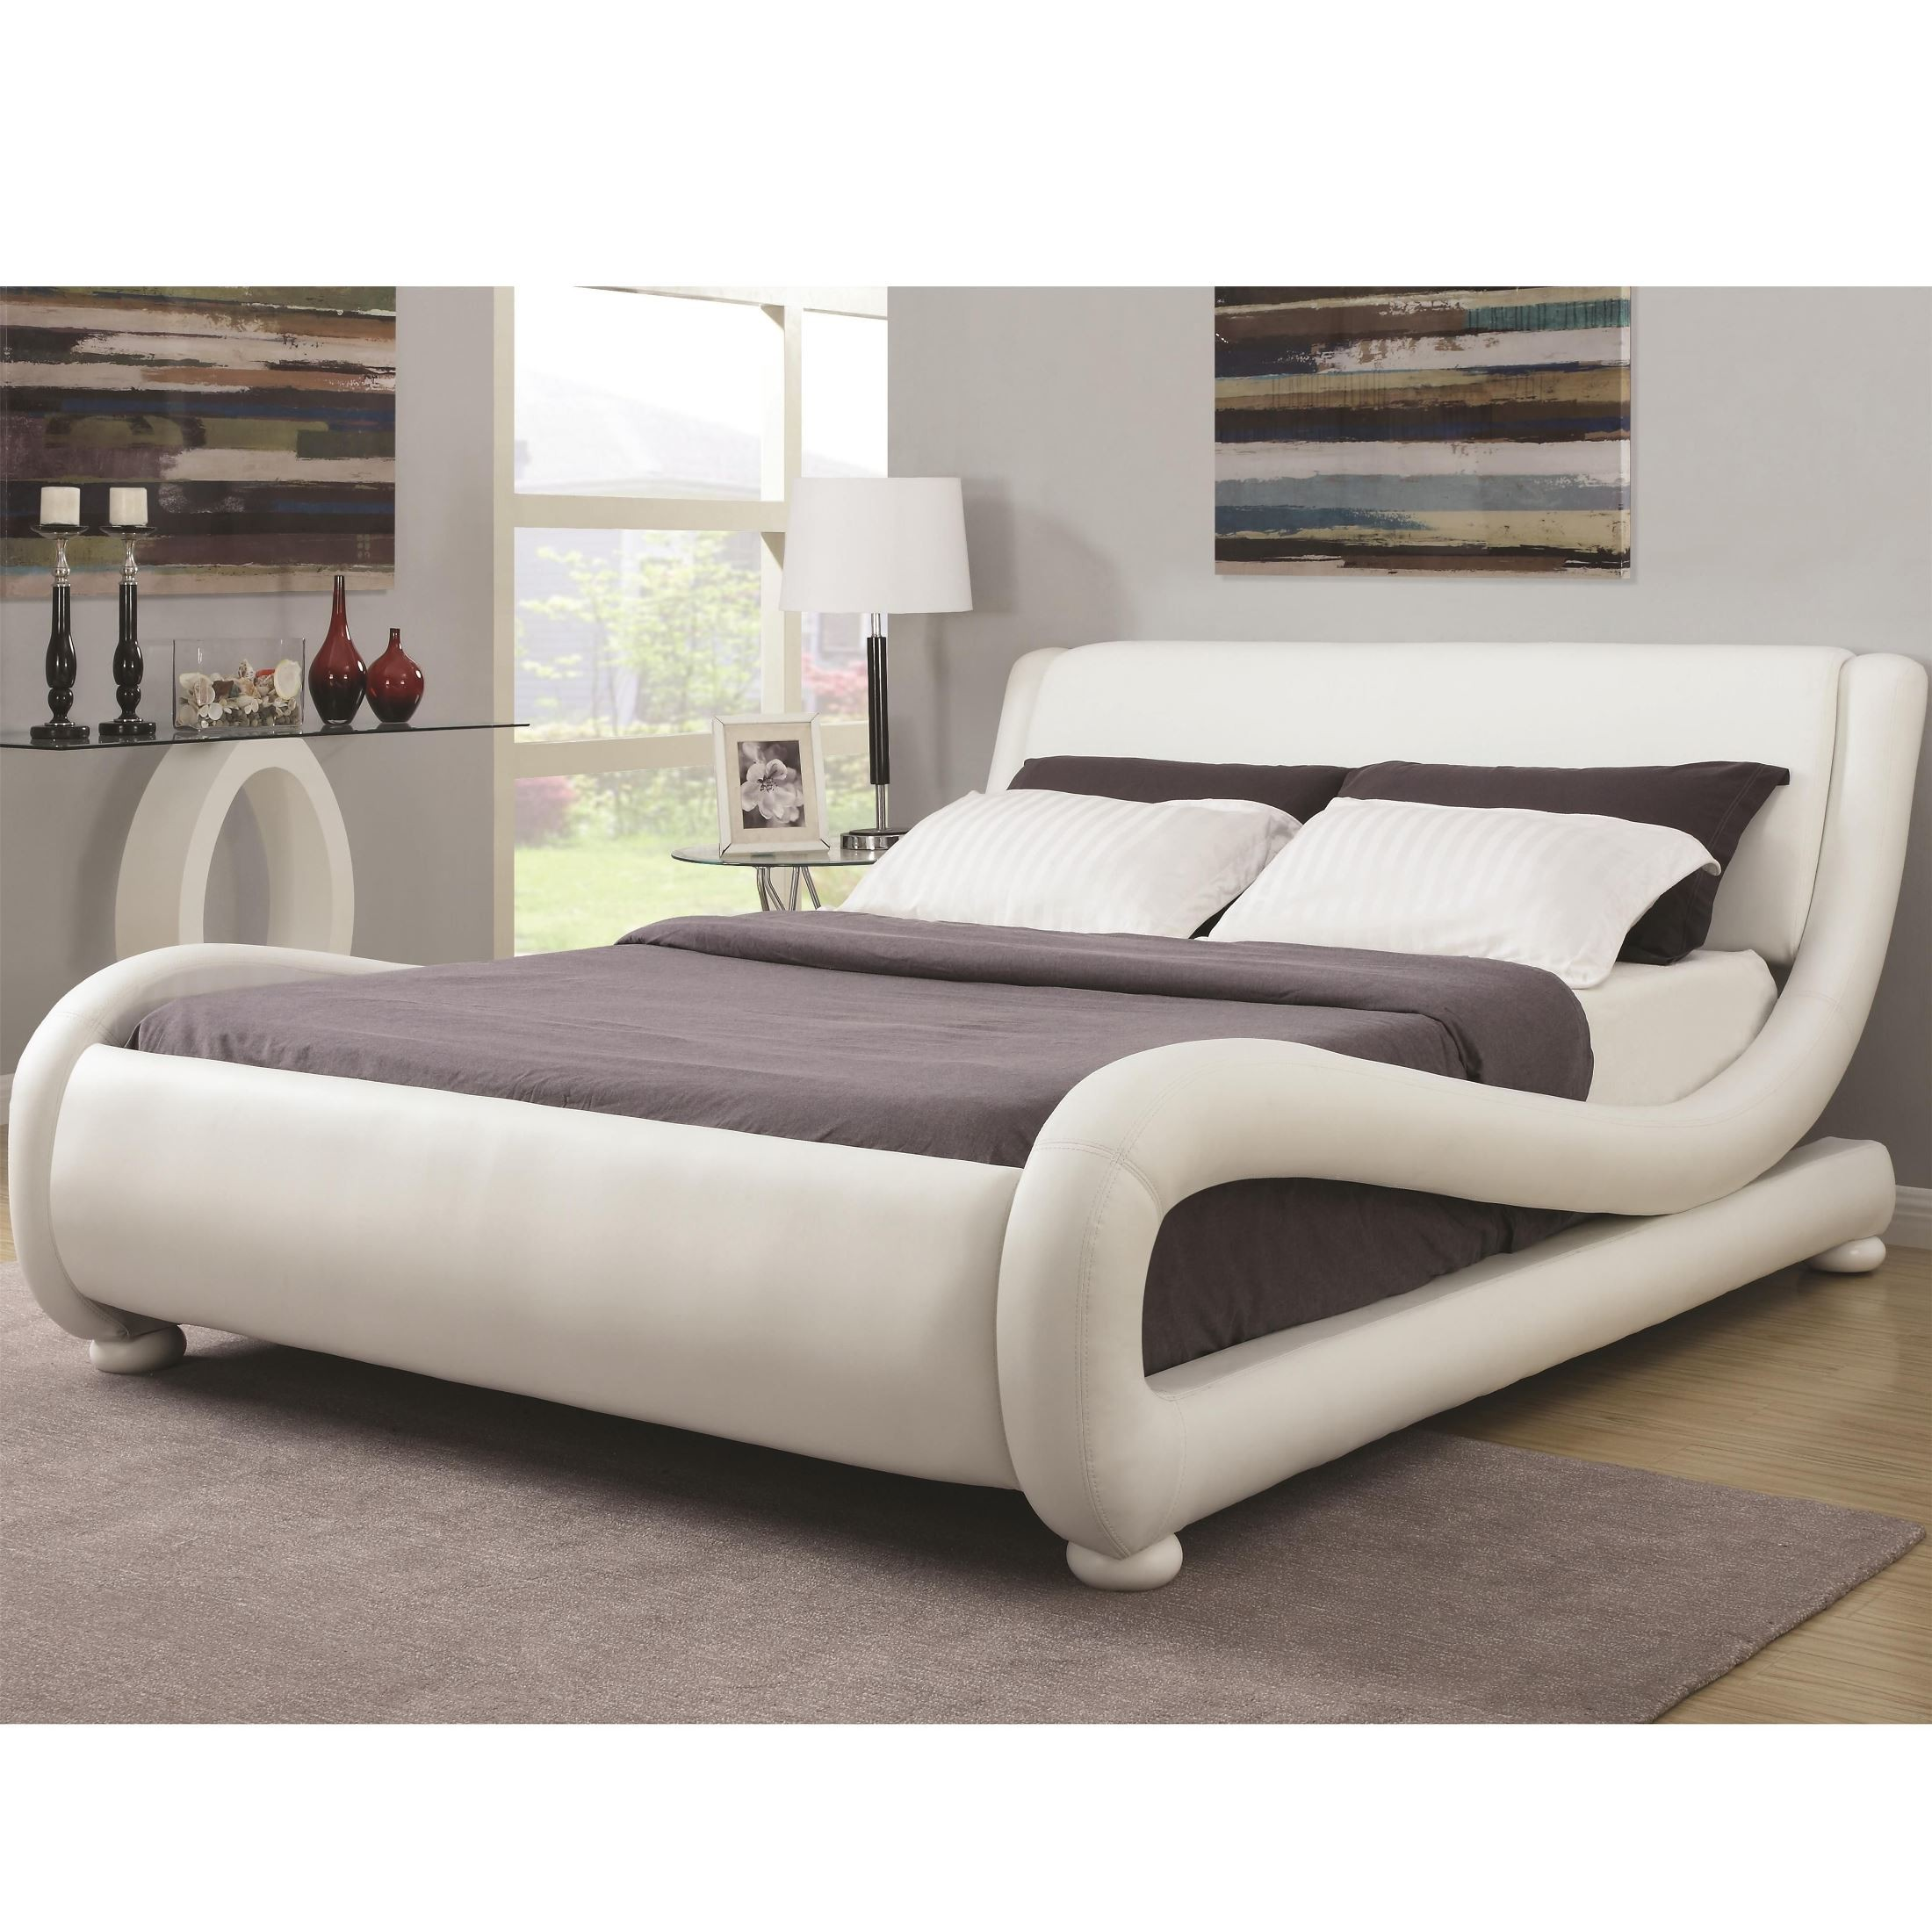 Kingsburg Modern King Upholstered Platform Bed From